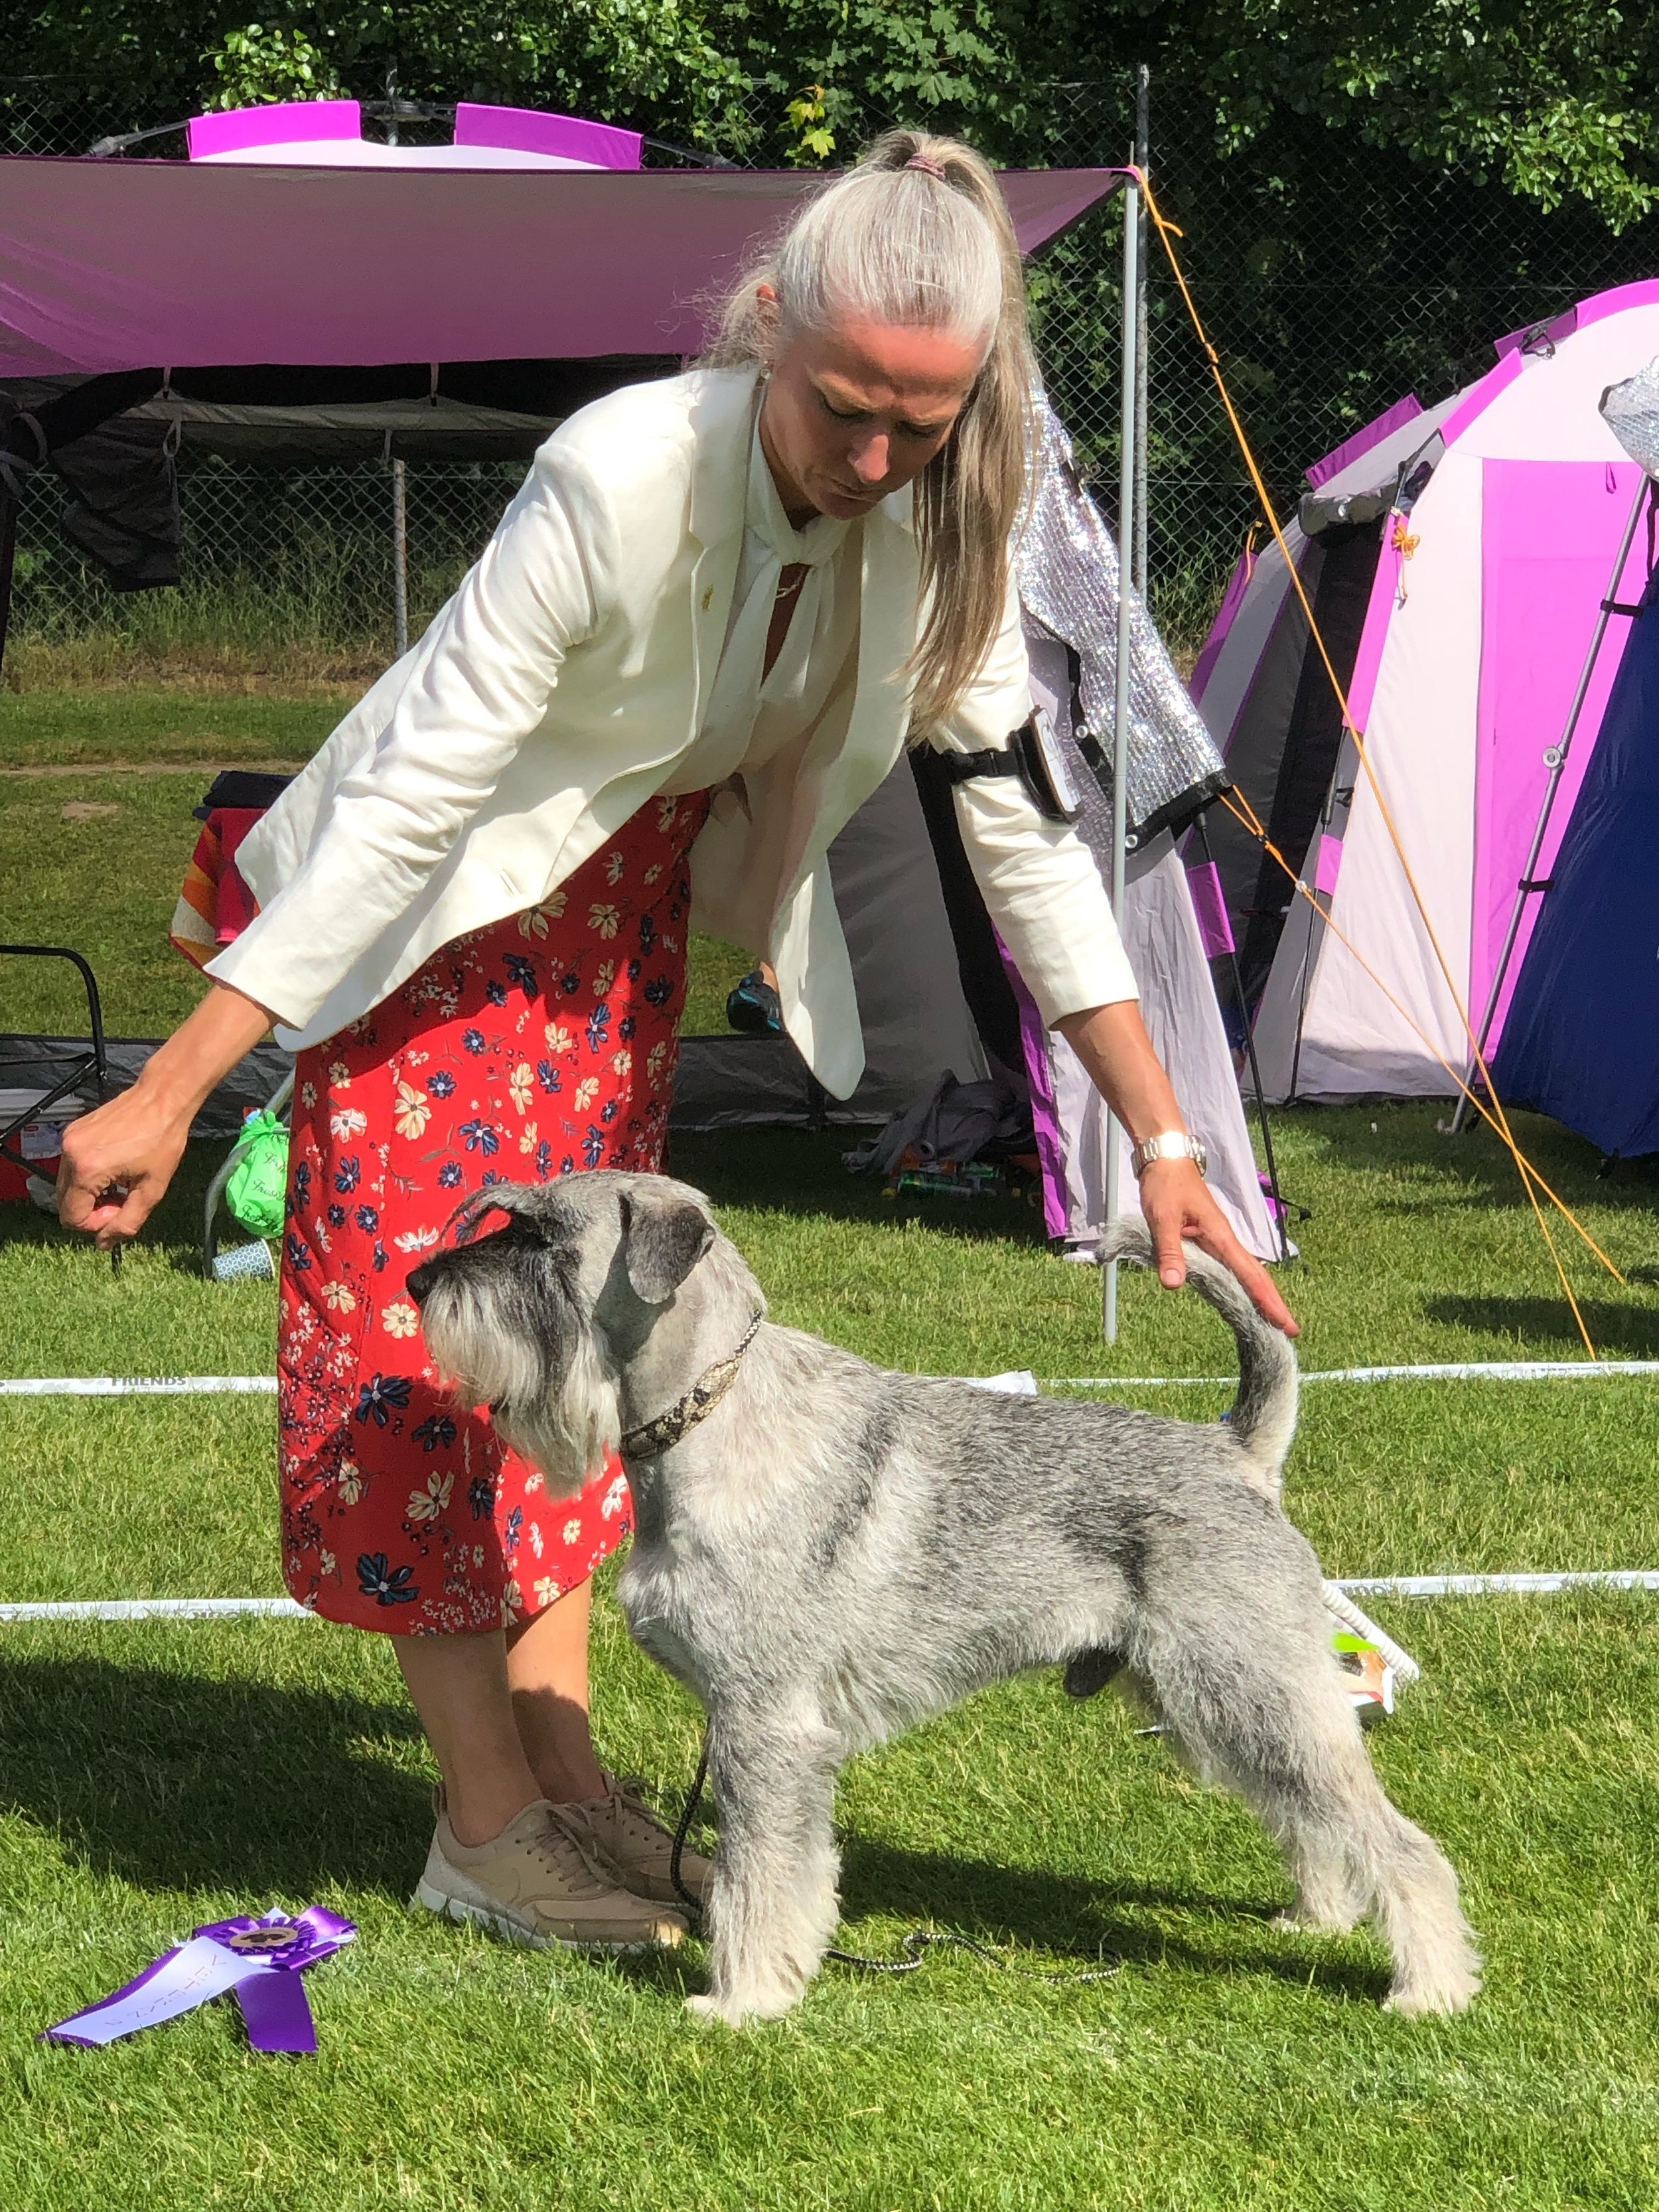 BEST IN SHOW 2 Veteran & BEST OF BREED in hard competition of 22 entered p/s schnauzers